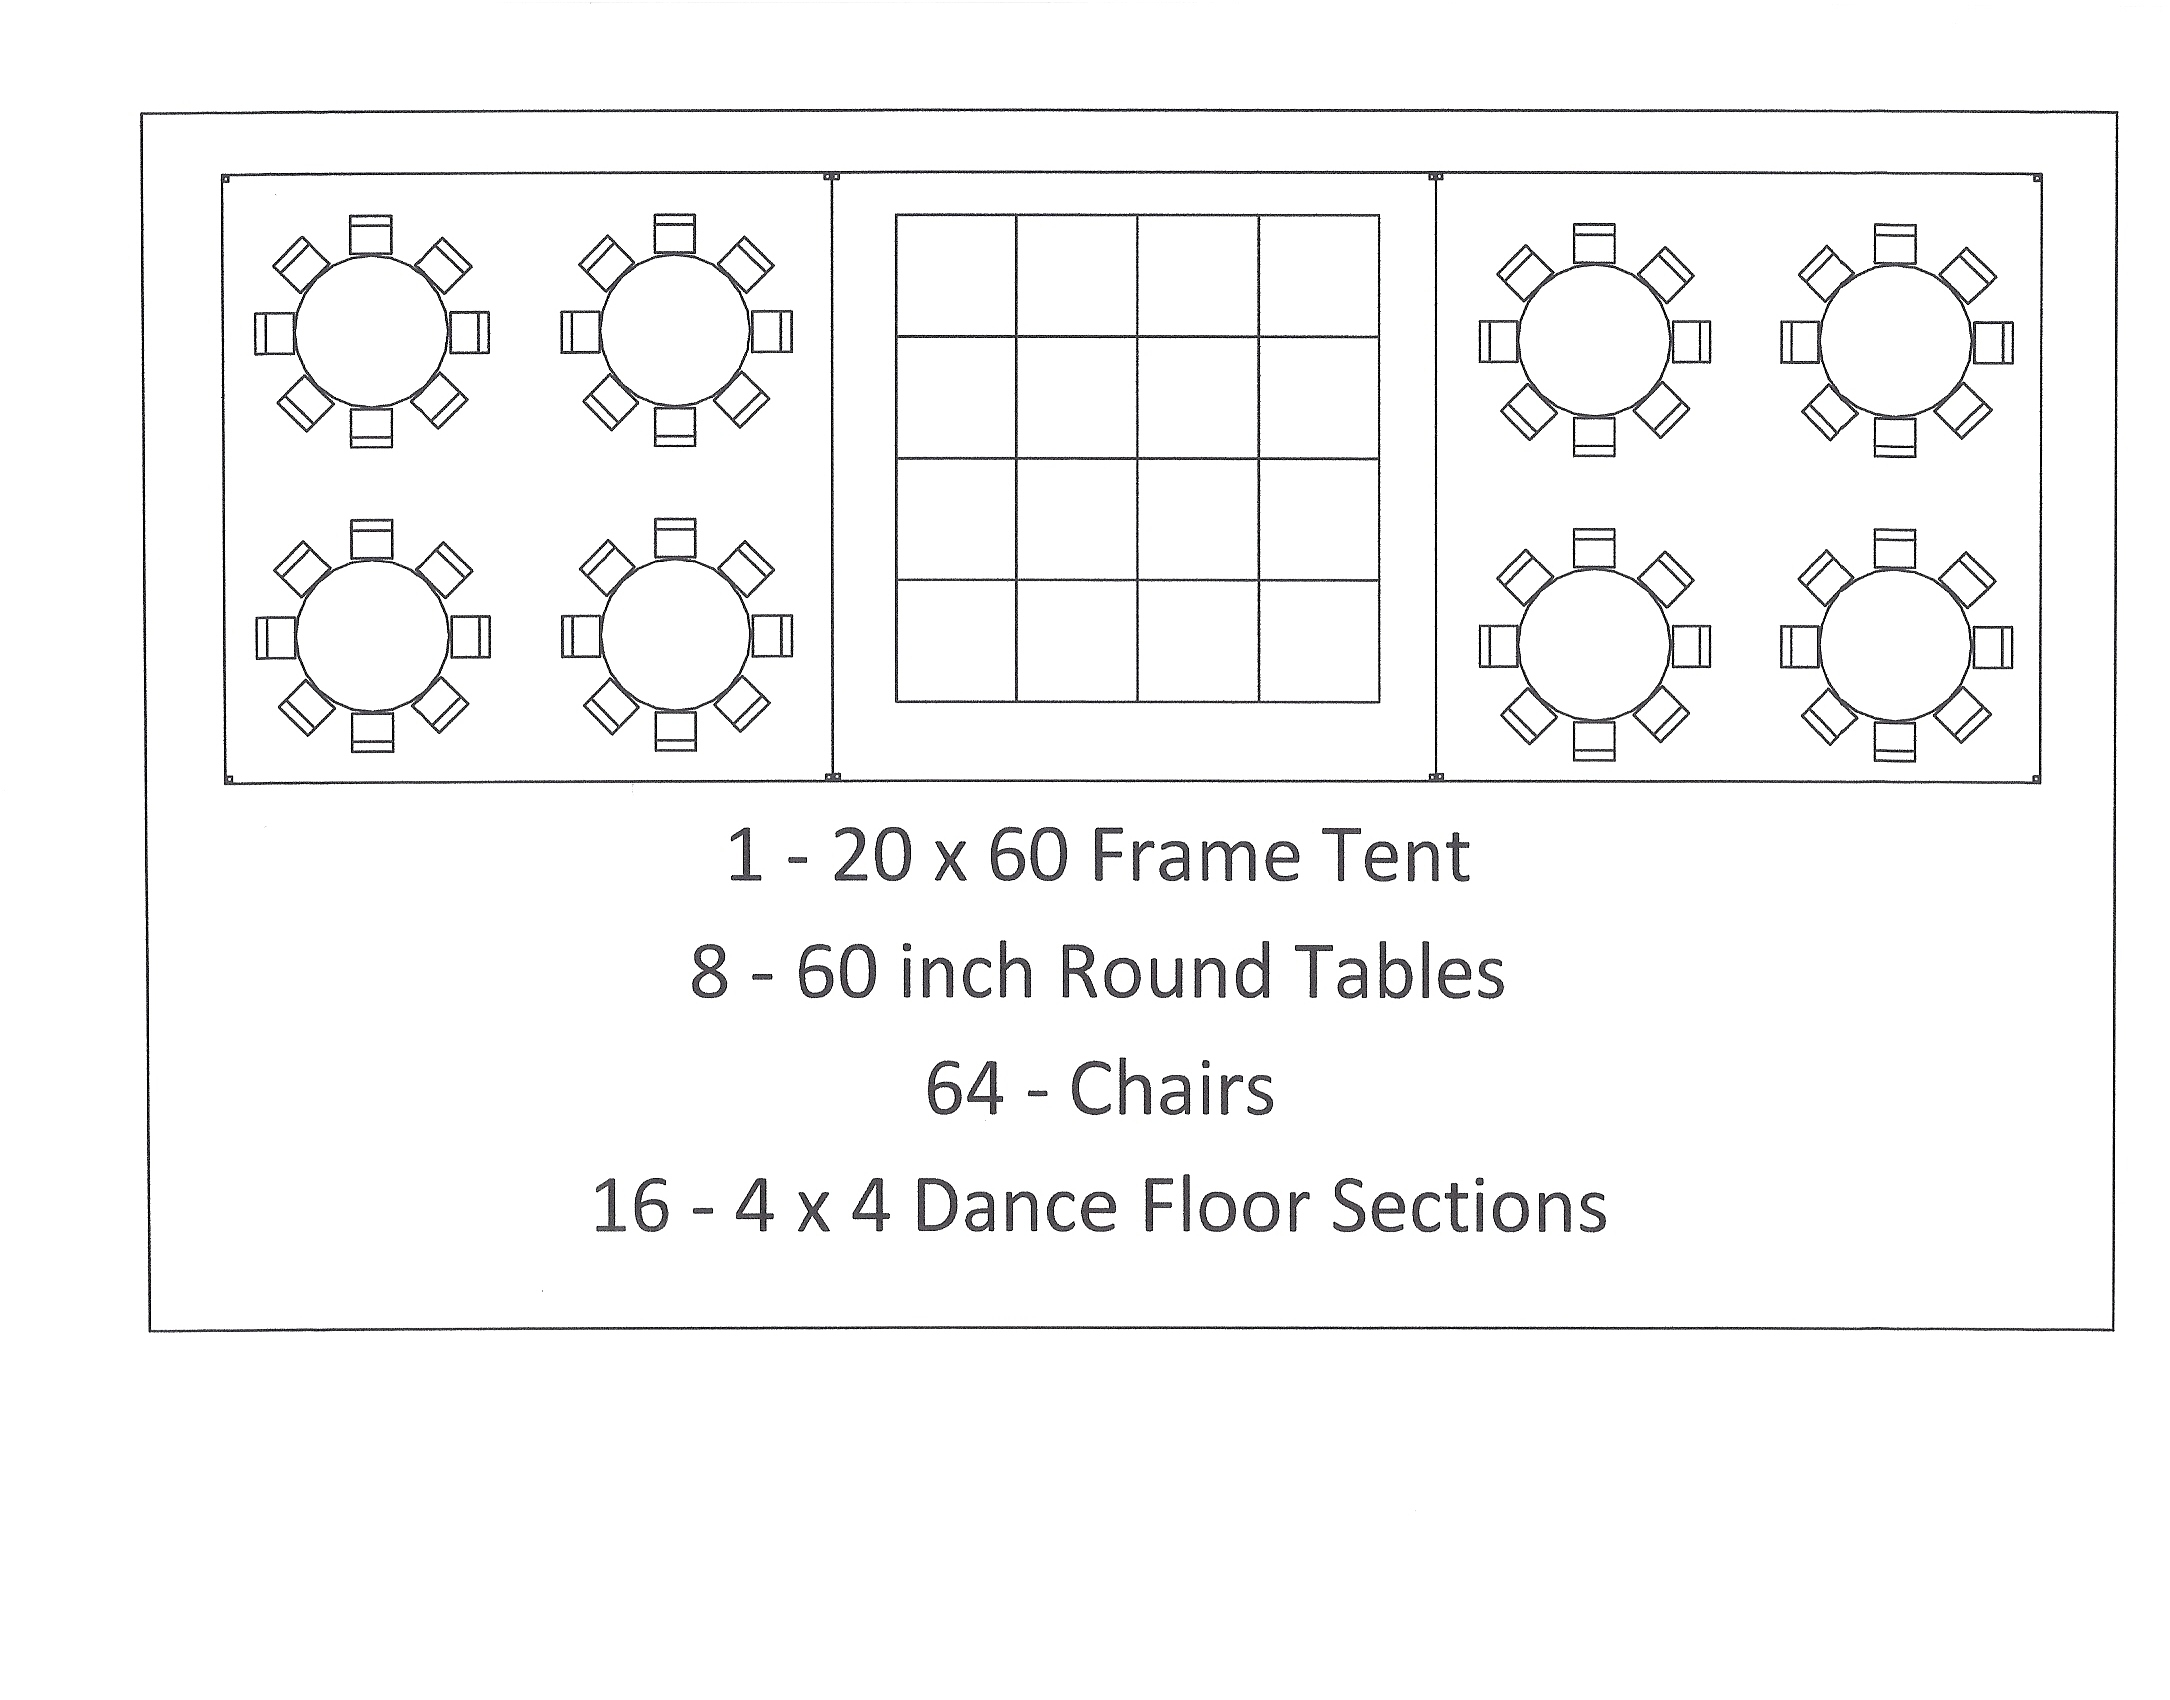 ... 20x60 frame tent 60 inch table seating wedding canton mi  sc 1 st  Canton Canopies & 20 x 60 Frame Tent | Canton Canopy